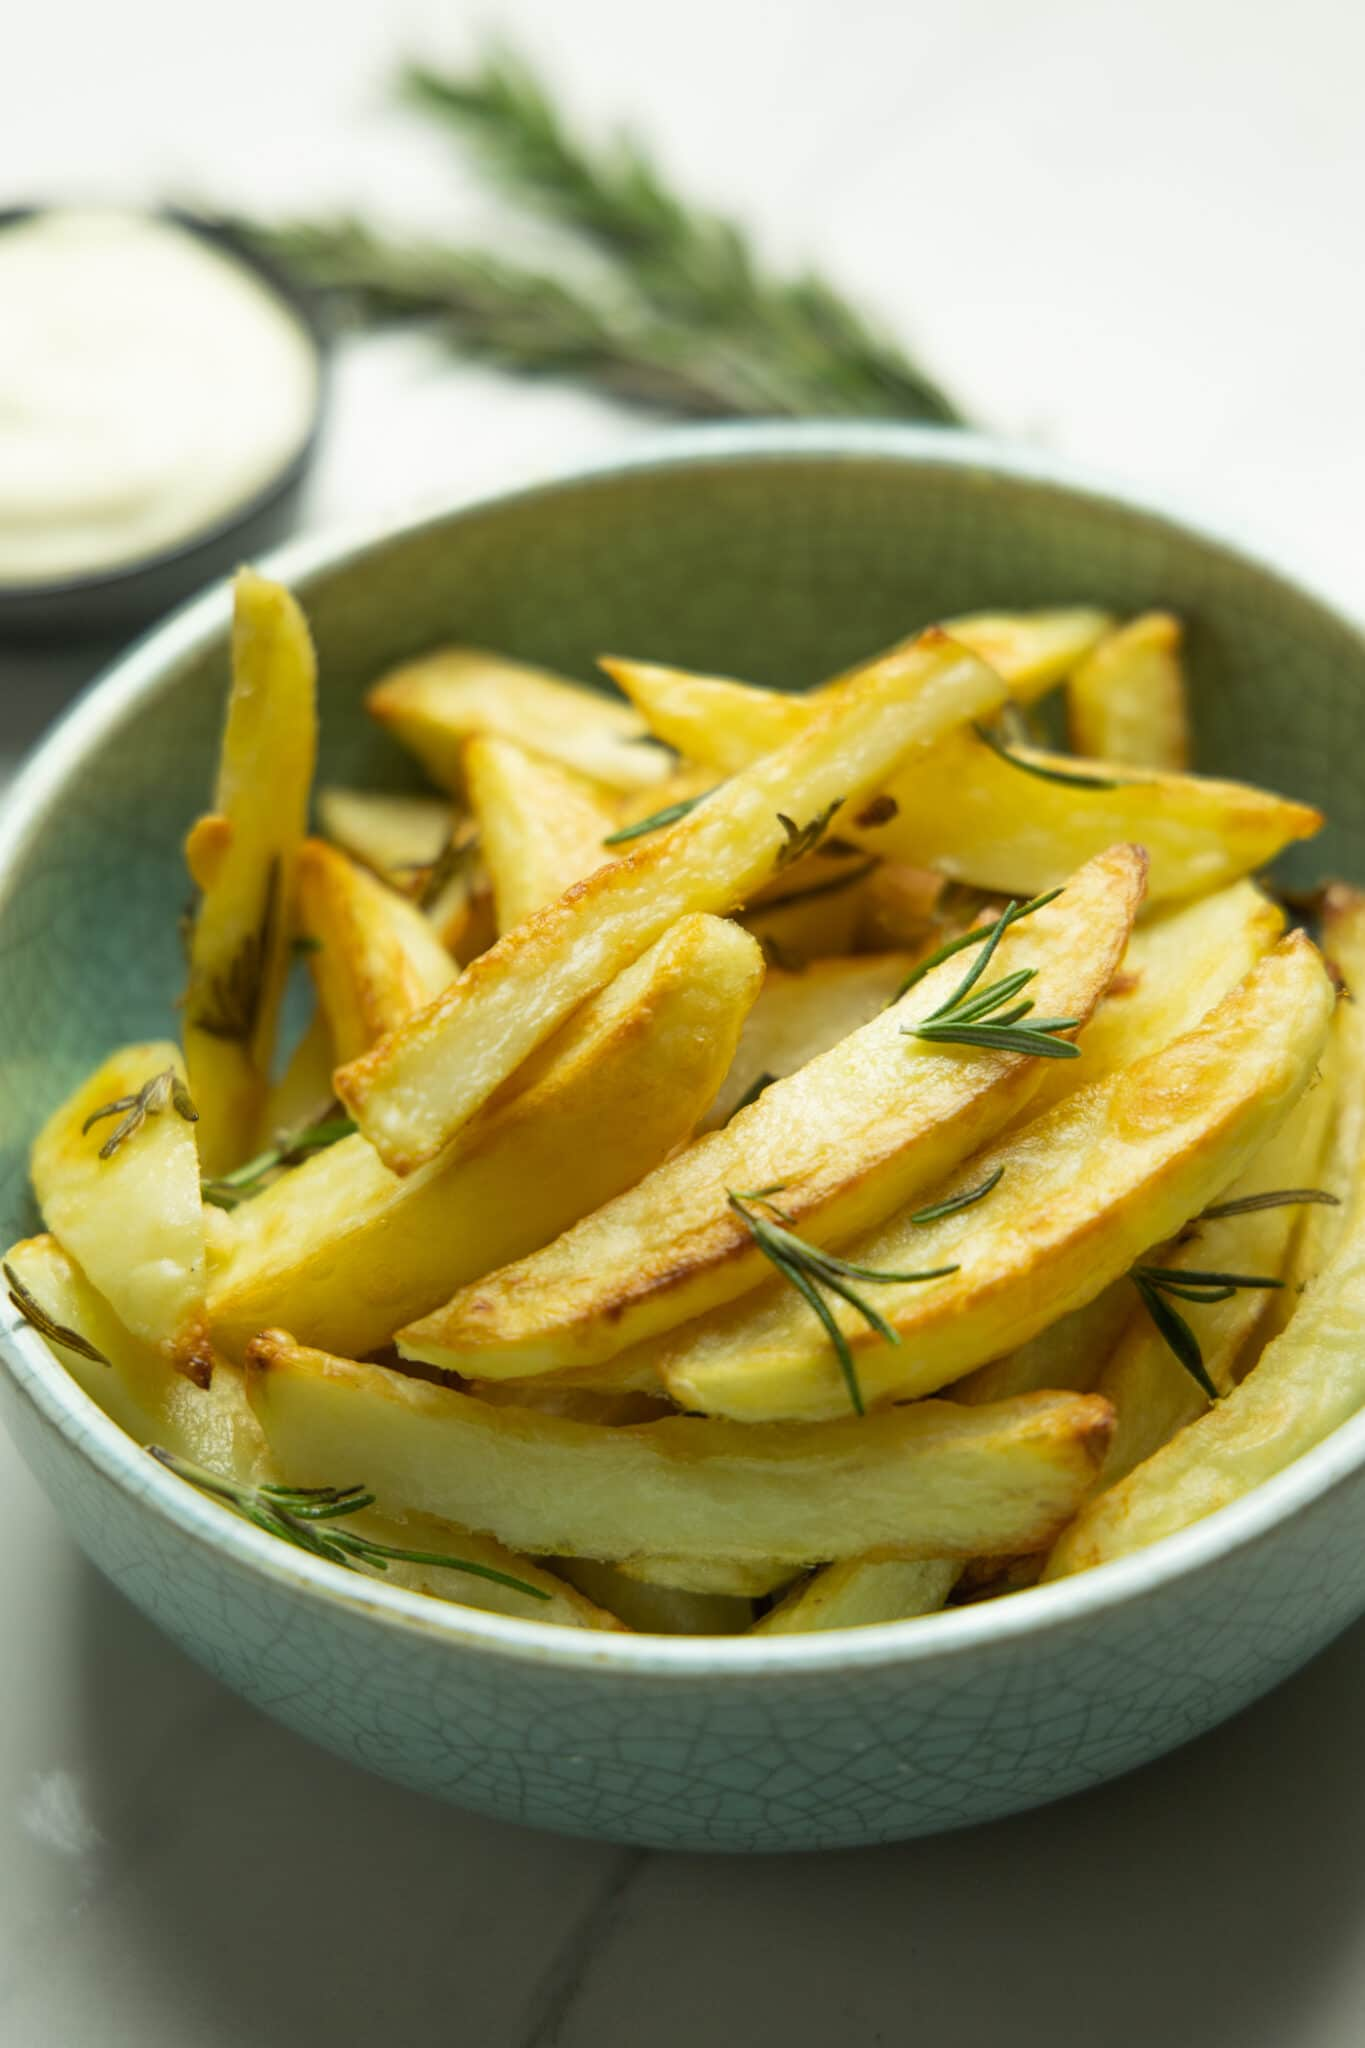 photo of the fries in a bowl with aioli and rosemary in the background